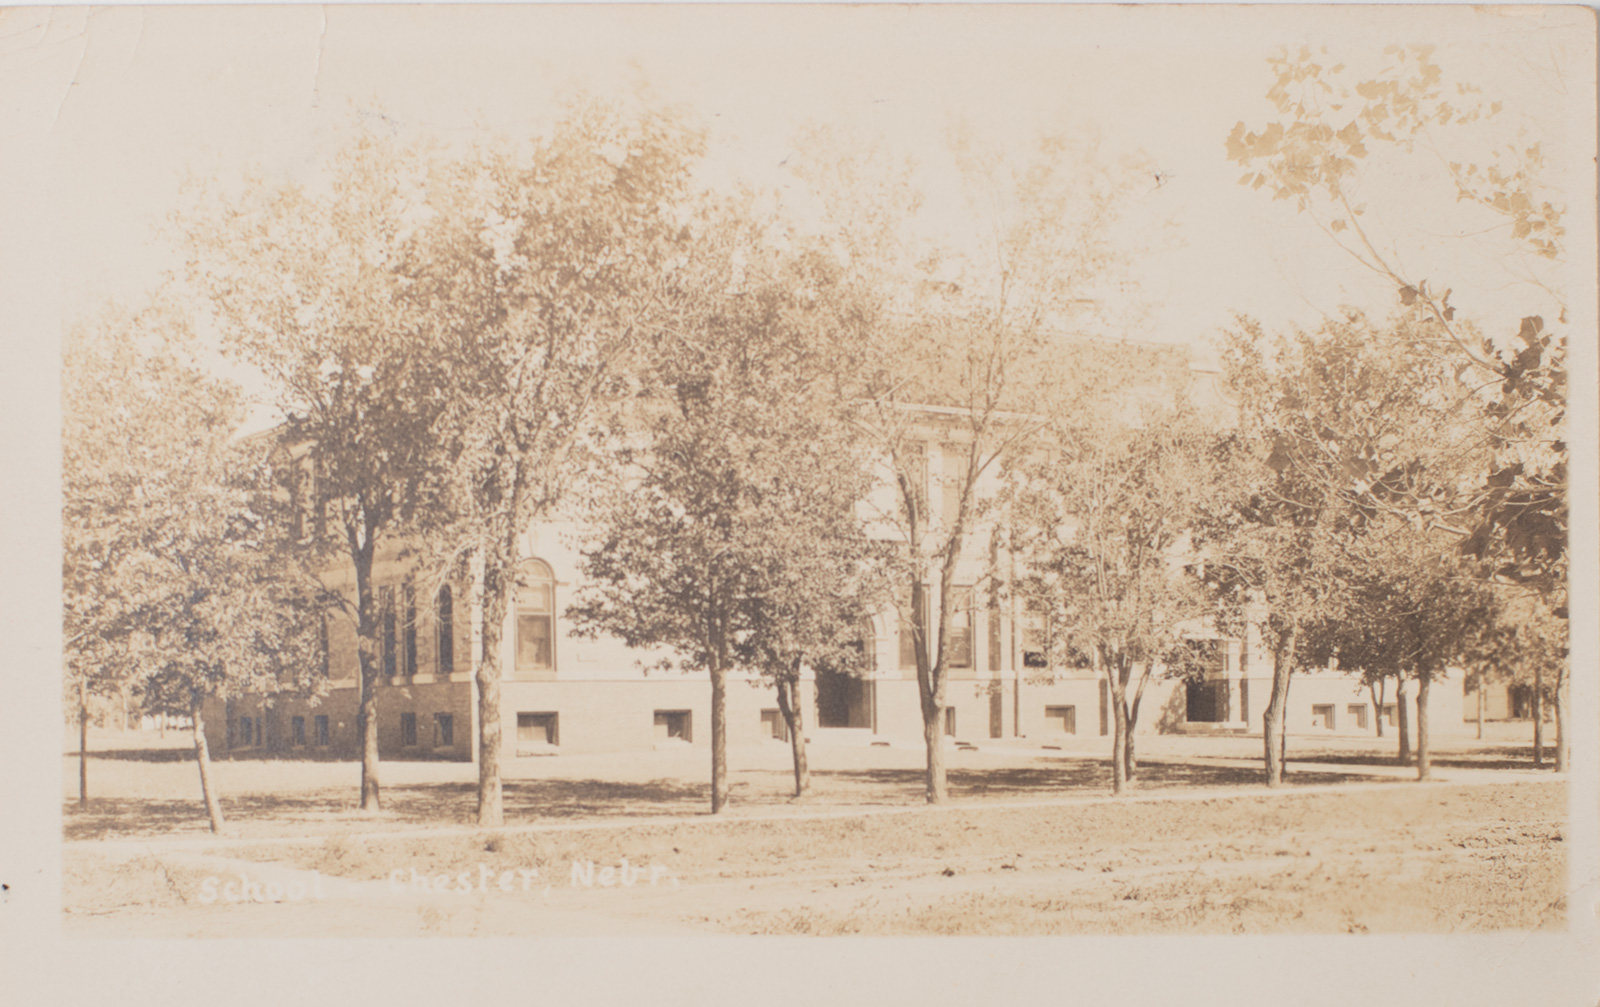 Chester Nebraska School - postcard 1924 Image